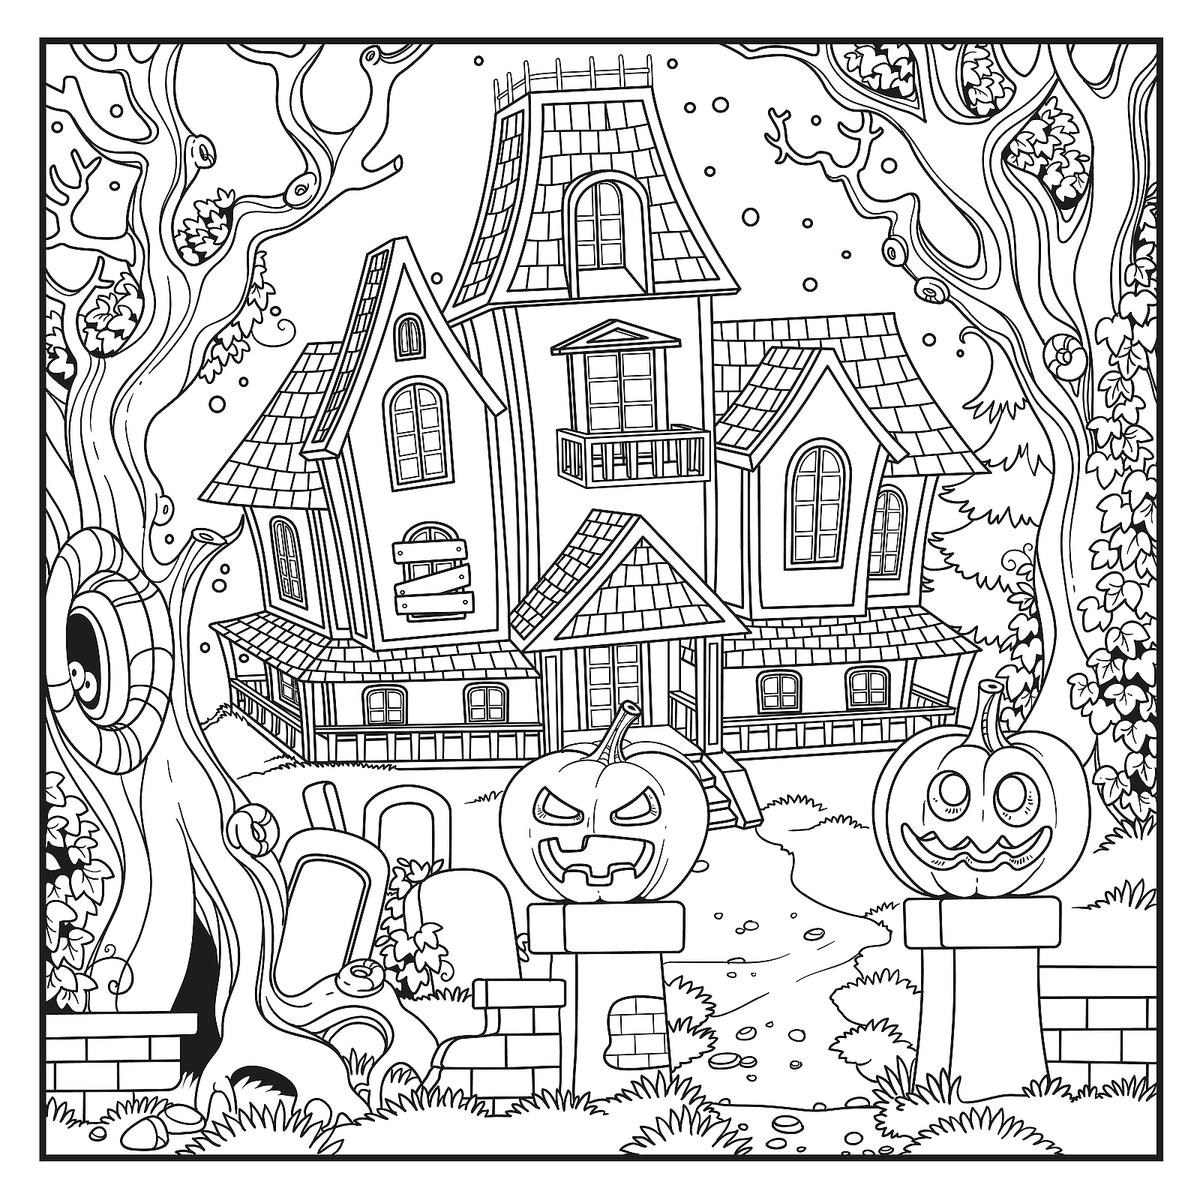 Free Scary Halloween Coloring Pages Images Of Scary Halloween Coloring Pages Printables Sabadaphnecottage